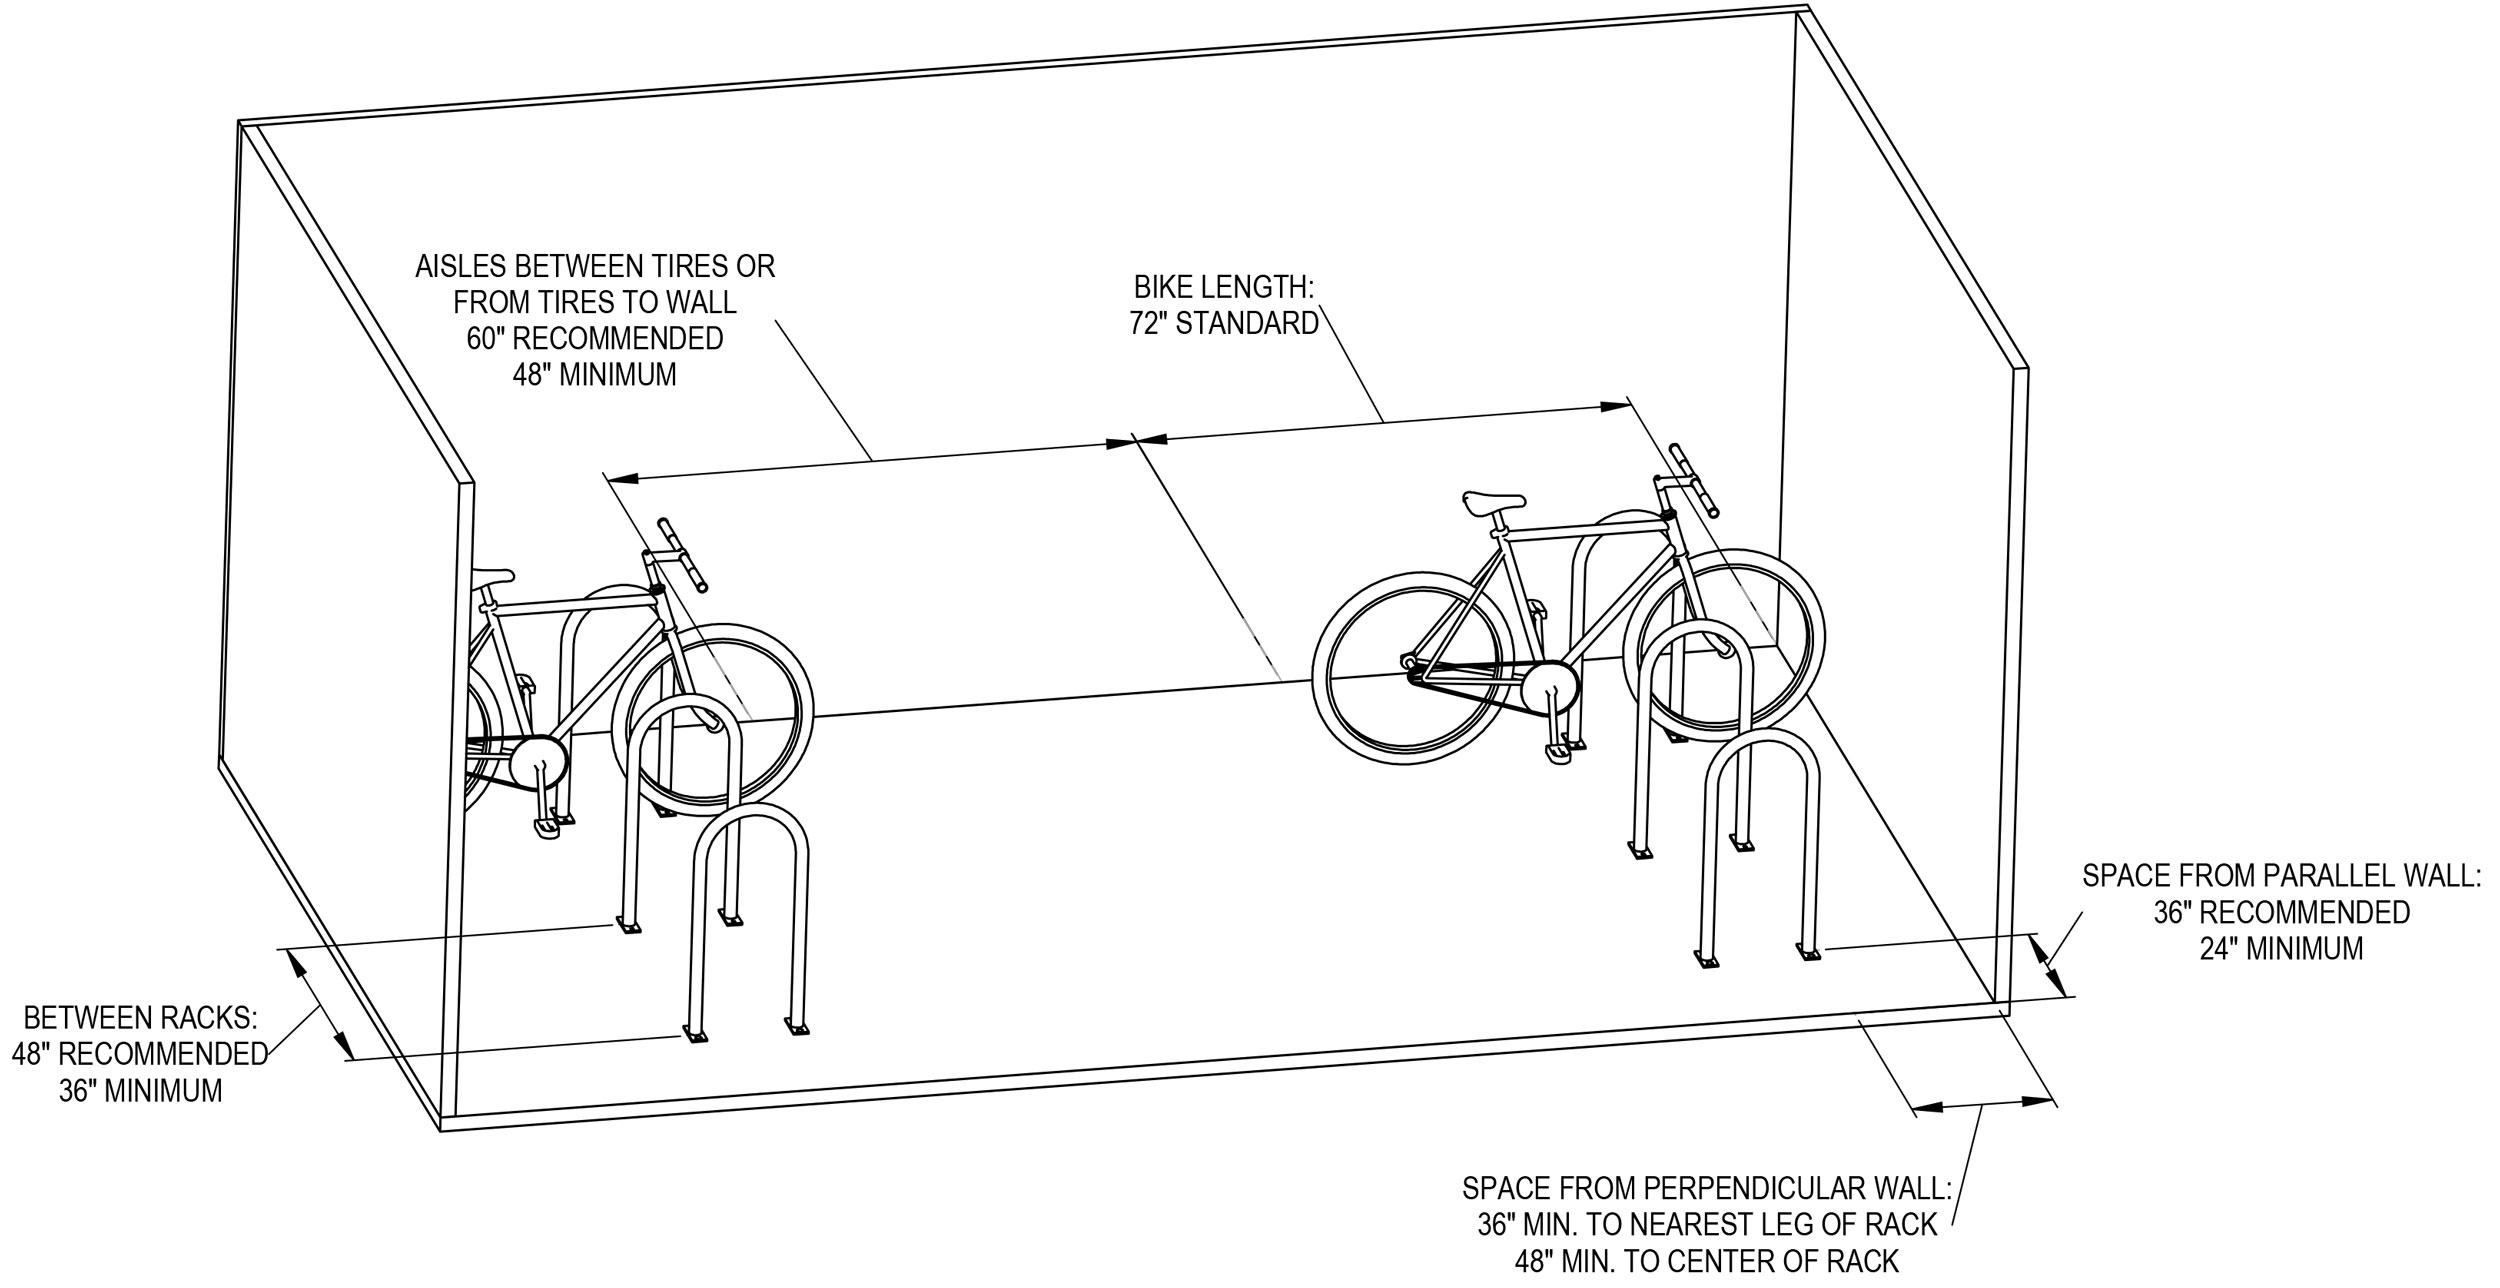 Madrax-Ground-Bike-Parking-Spacing-Recommendations